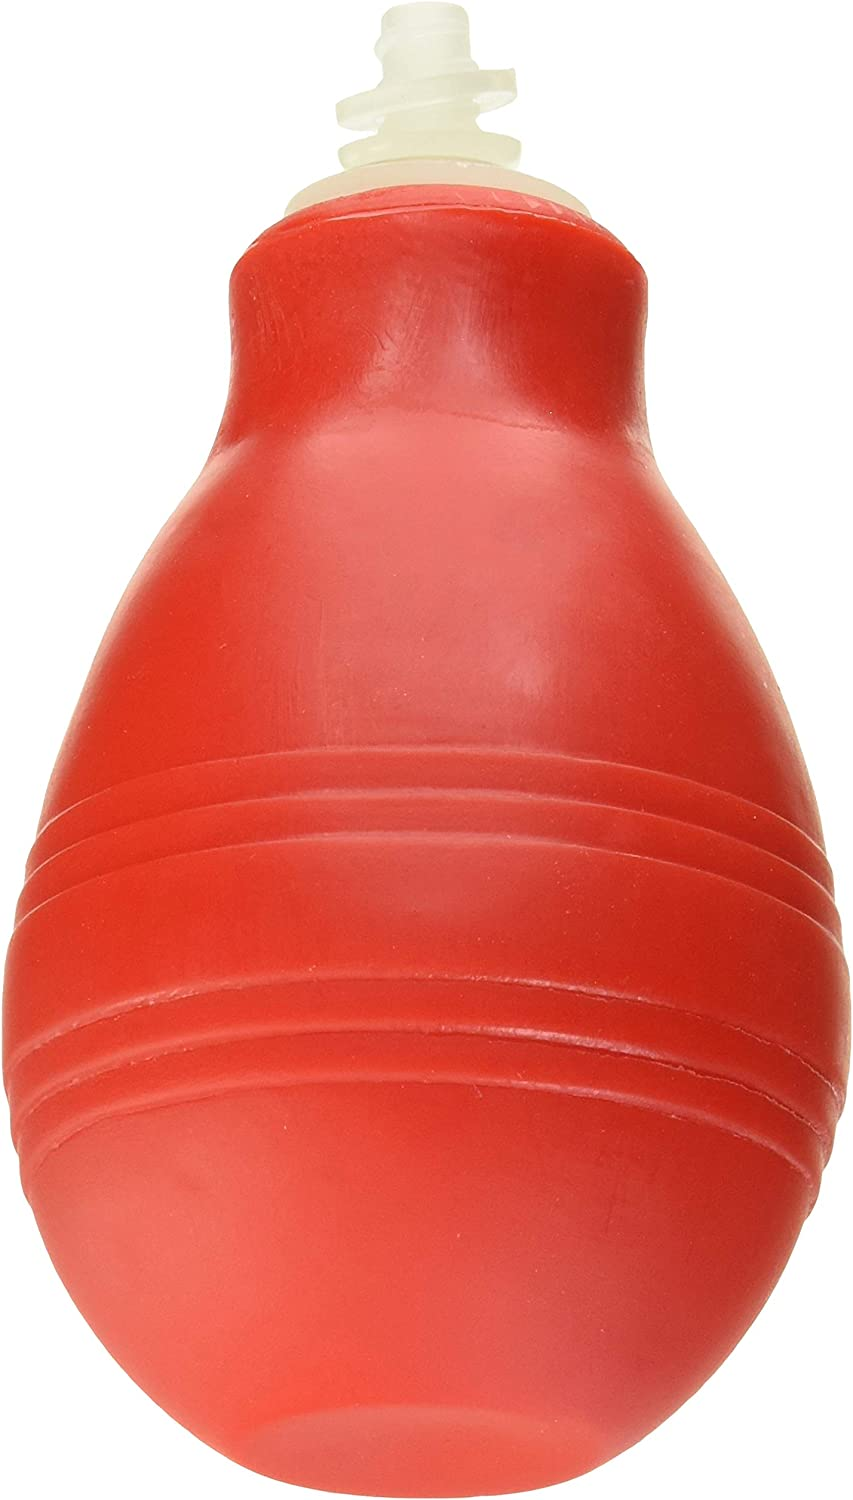 Abs Holdings Kinx Glowing Douche Store 2.75 Inch Baltimore Mall Red